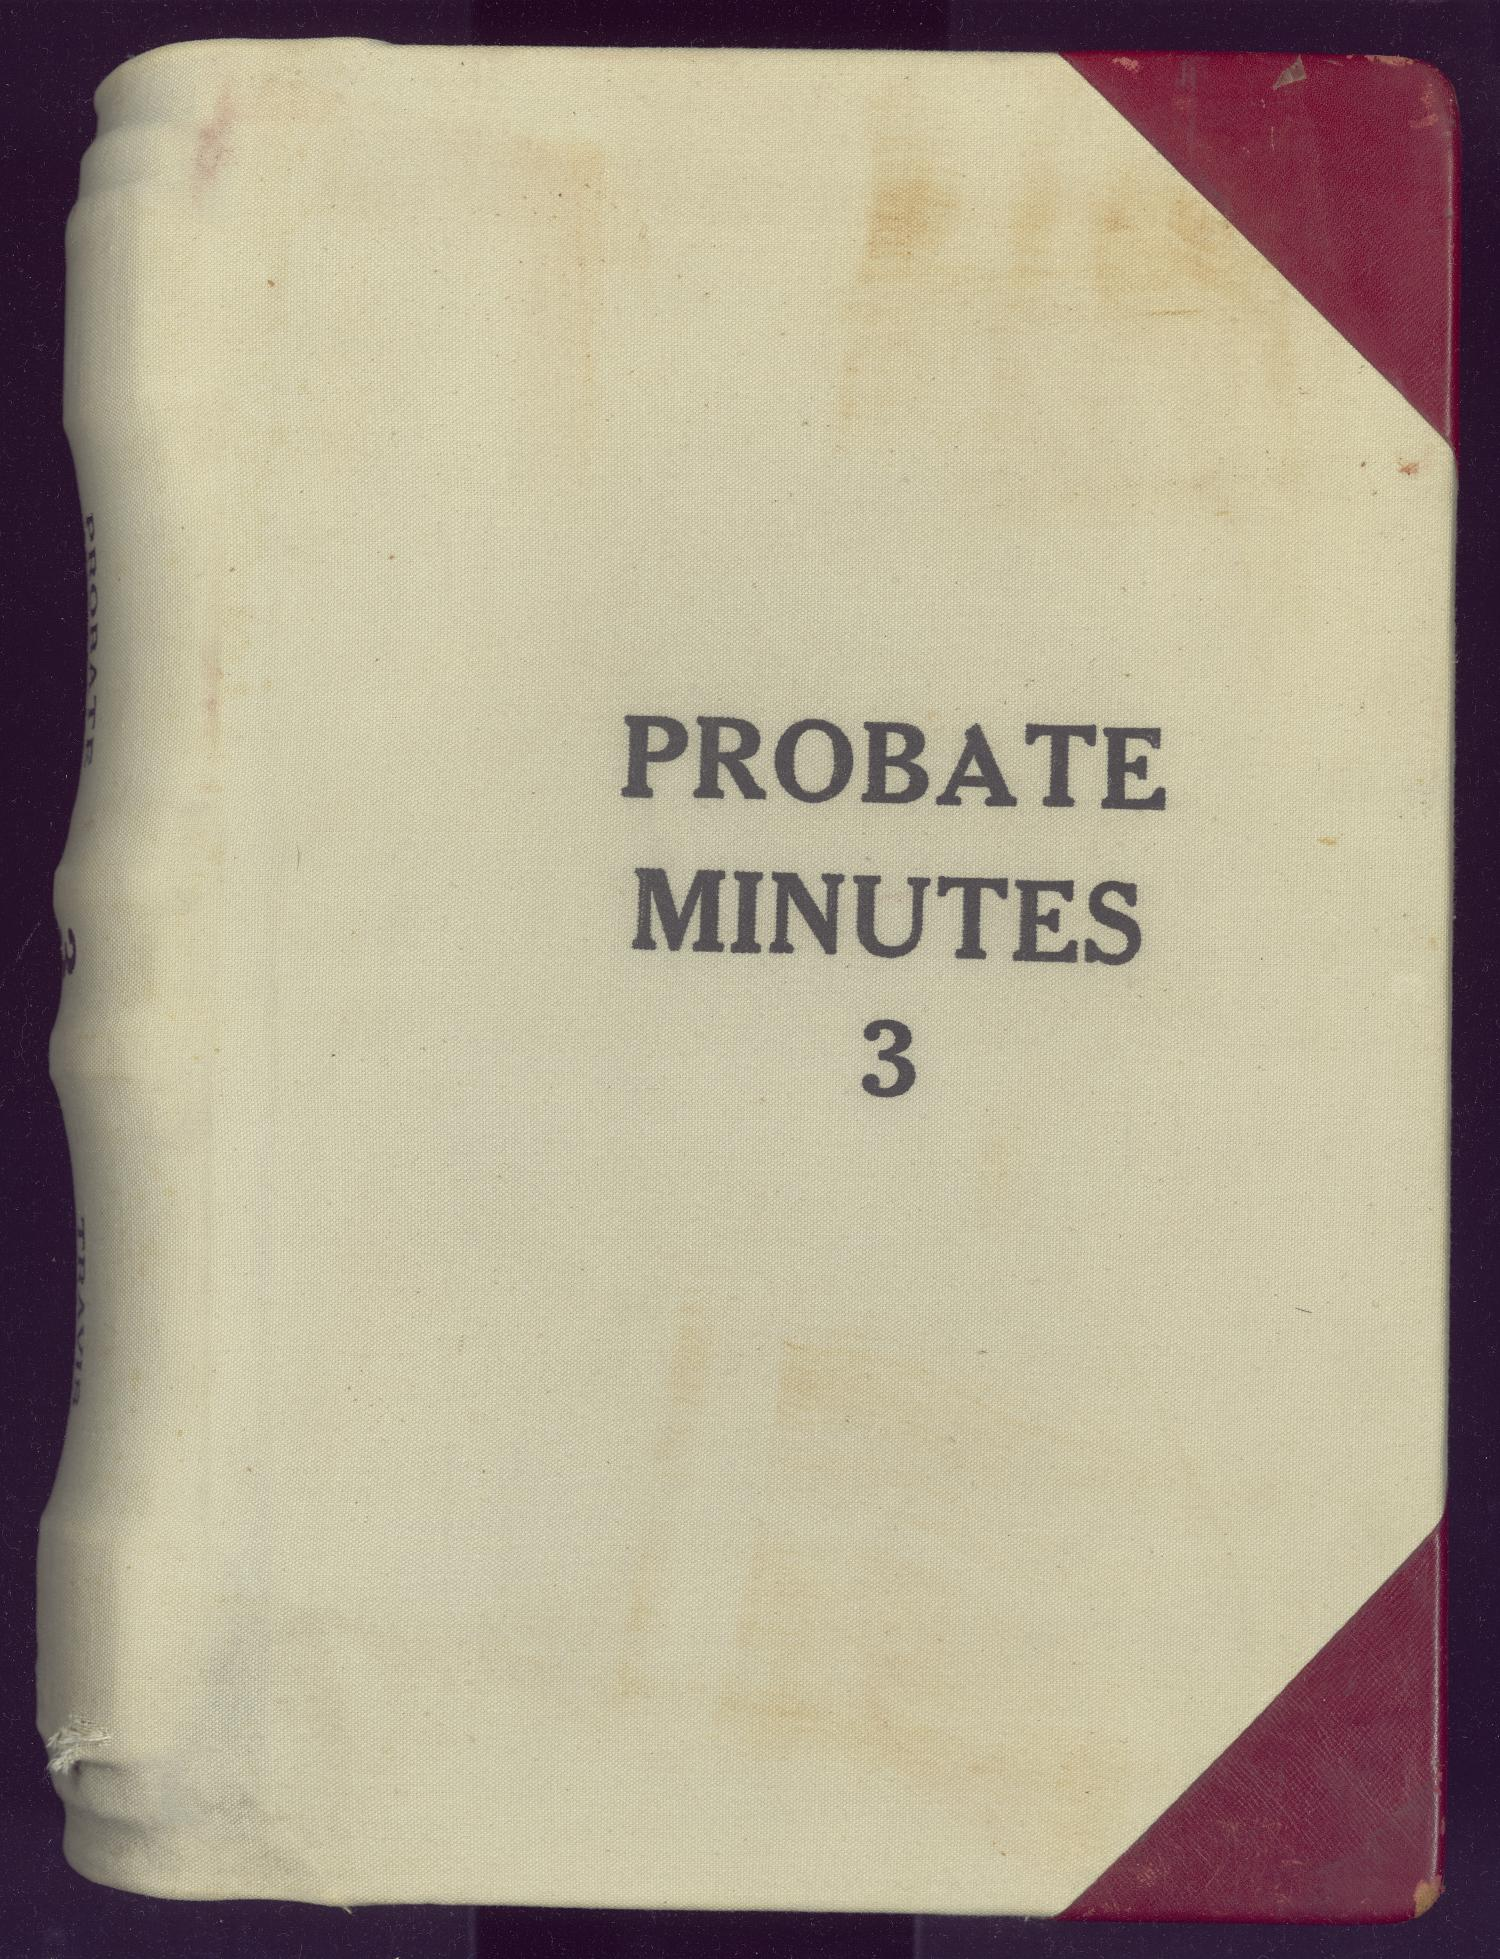 Travis County Probate Records County Clerk Probate Minutes 3  Page Front cover  The Portal to